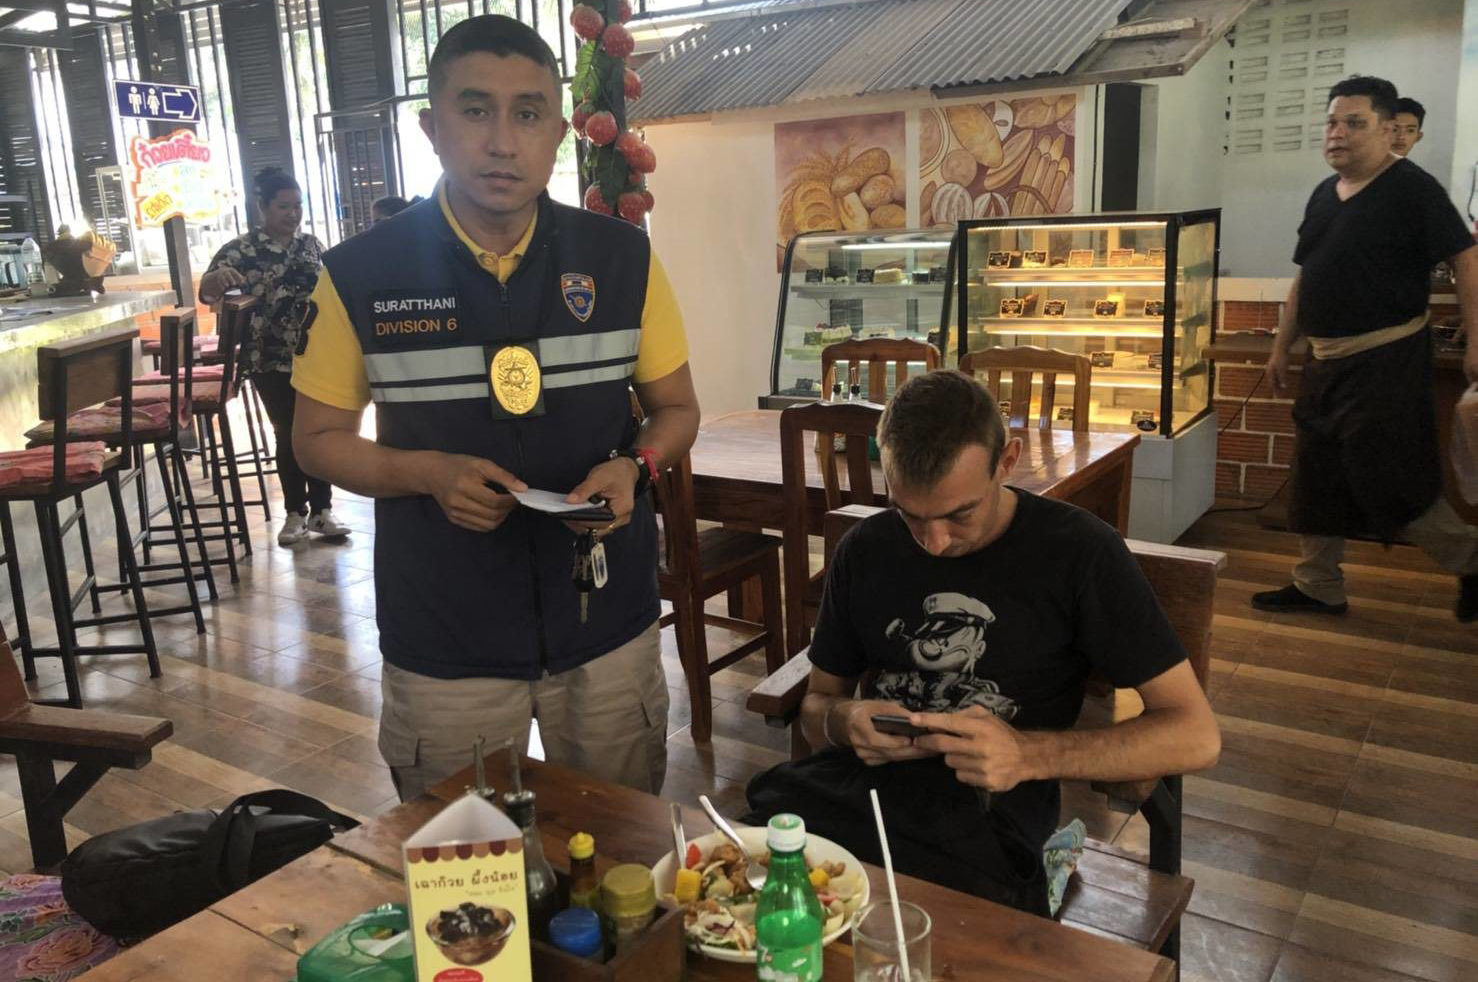 Russian nabbed for 7 year overstay in Samui | News by Thaiger